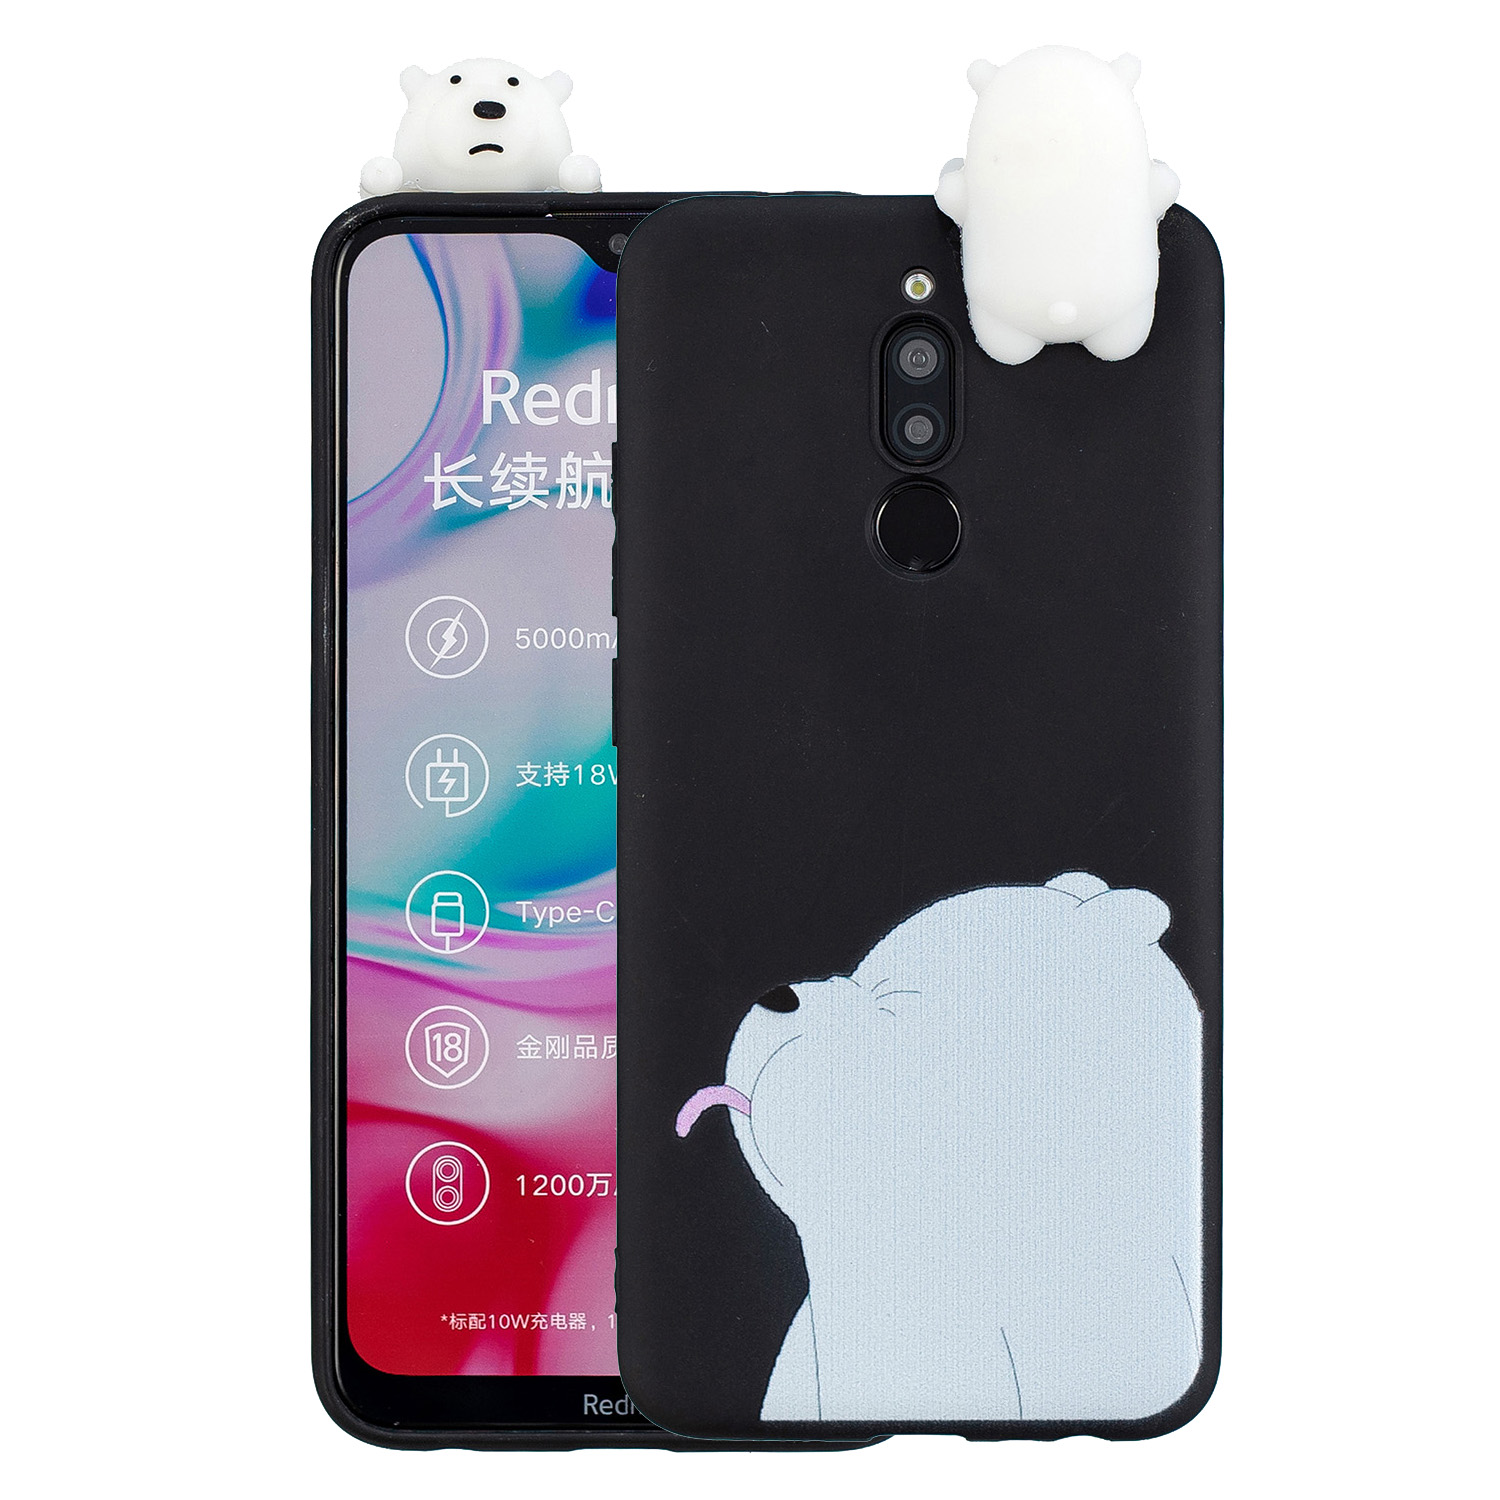 For Redmi 8/8A/5/Note 8T Mobile Phone Case Cute Cellphone Shell Soft TPU Cover with Cartoon Pig Duck Bear Kitten Lovely Pattern Black